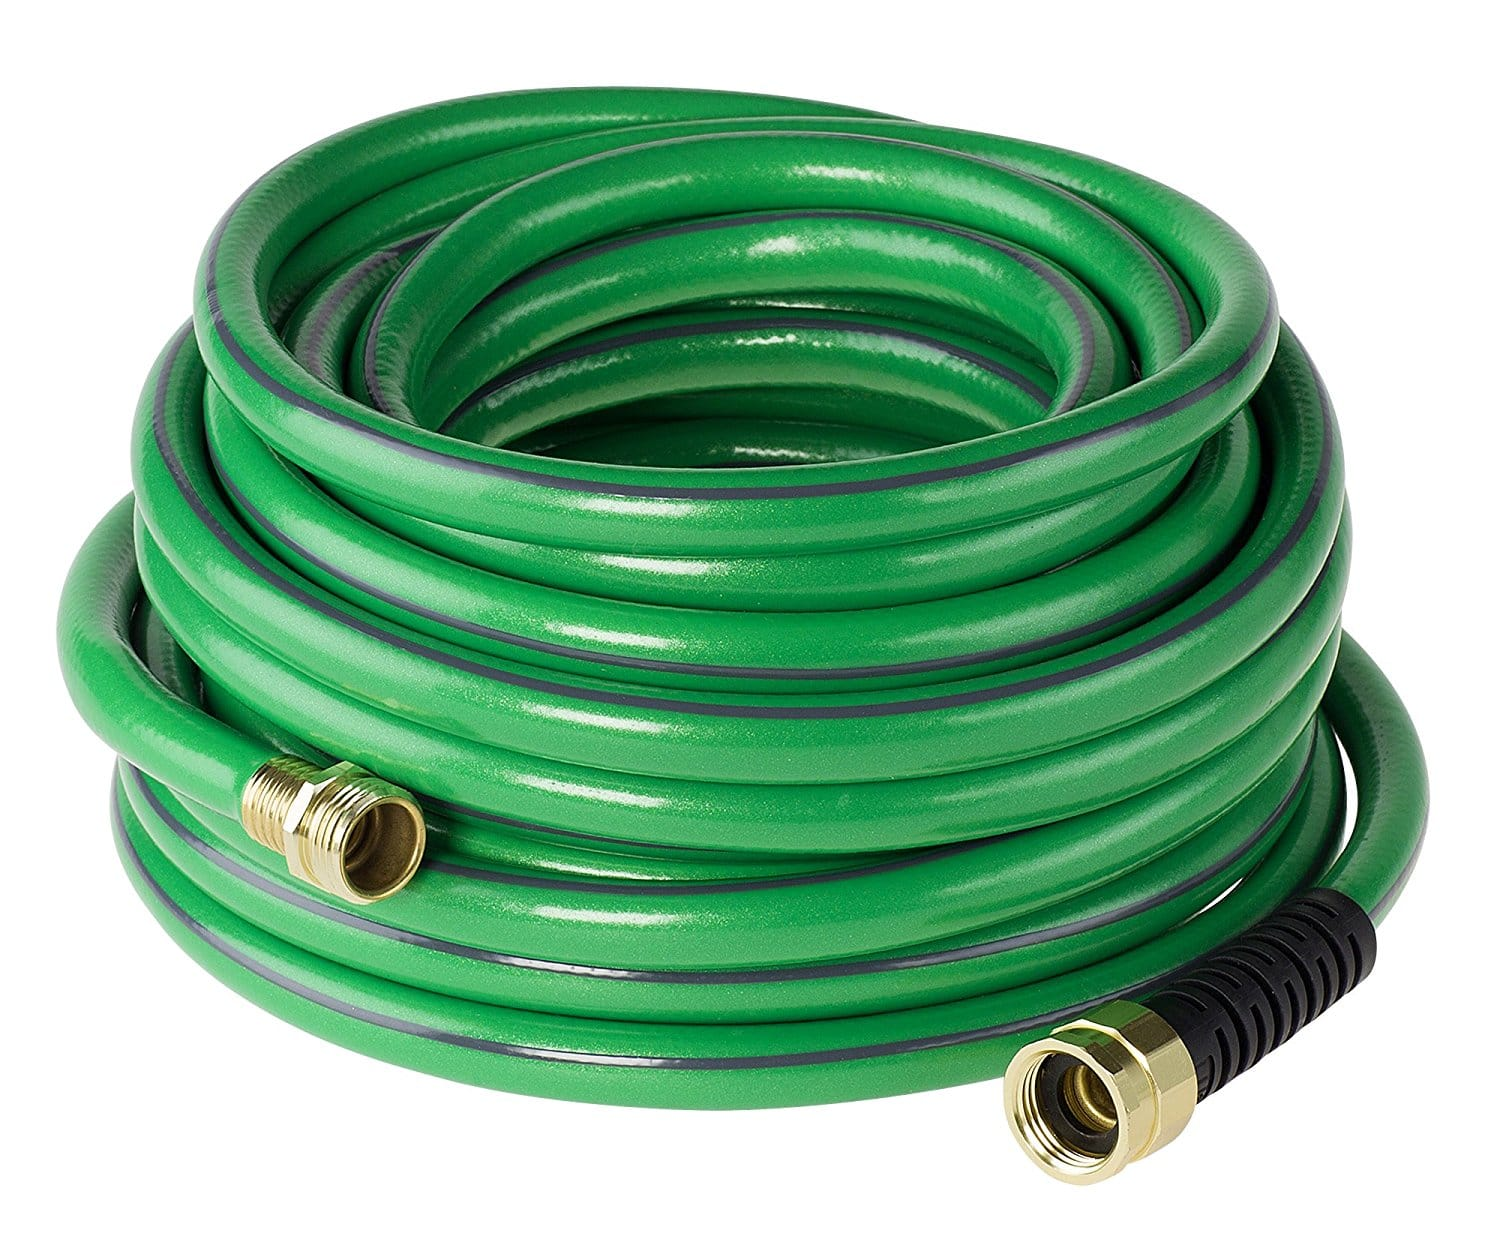 best garden hose, Miracle Gro UltraLite 50 ft Garden Hose